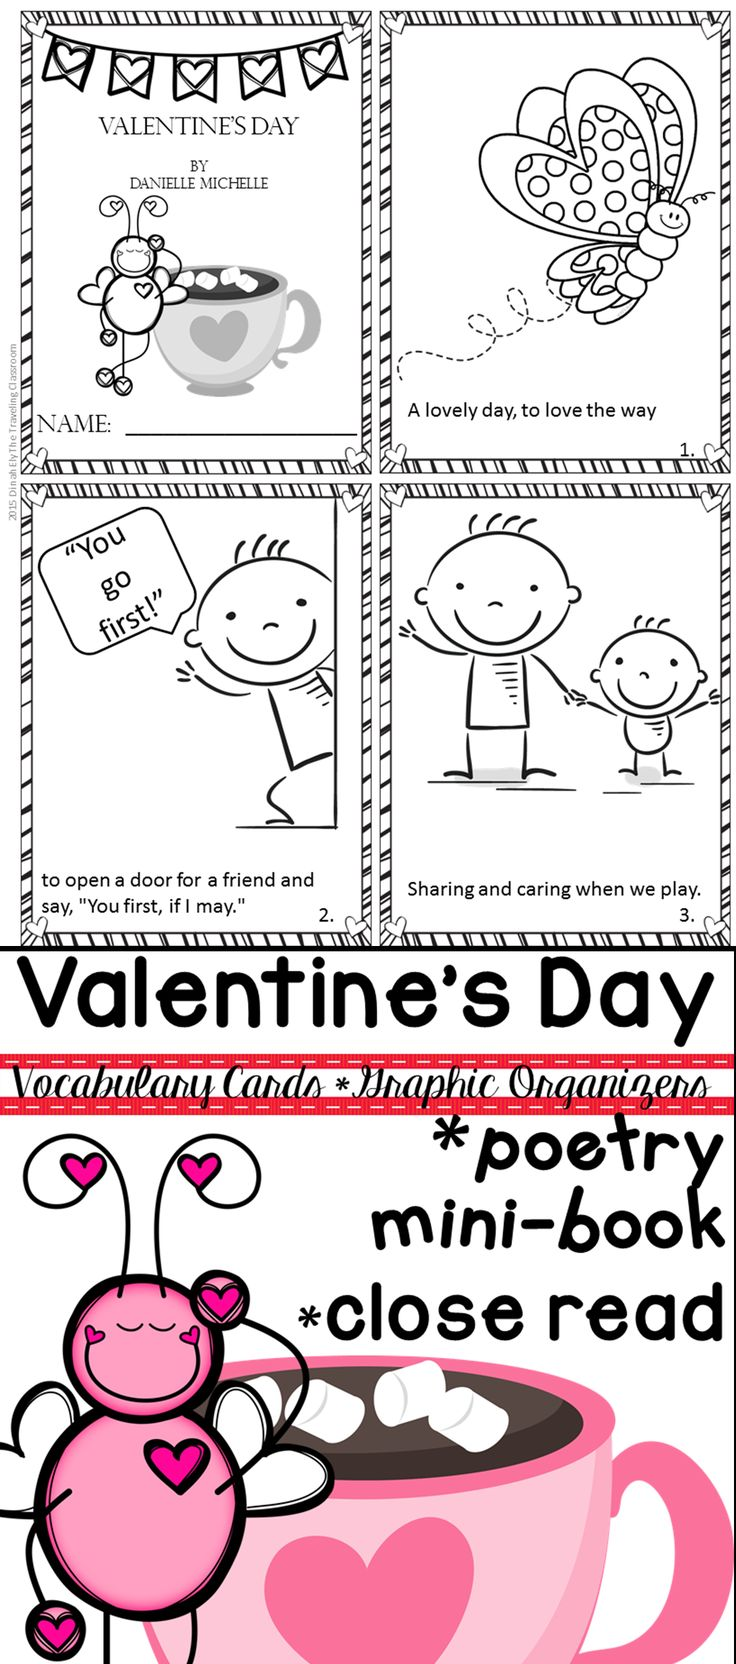 Valentine's Day Close Reading includes mini book, vocabulary cards, graphic organizers, close reading tools, & more!$